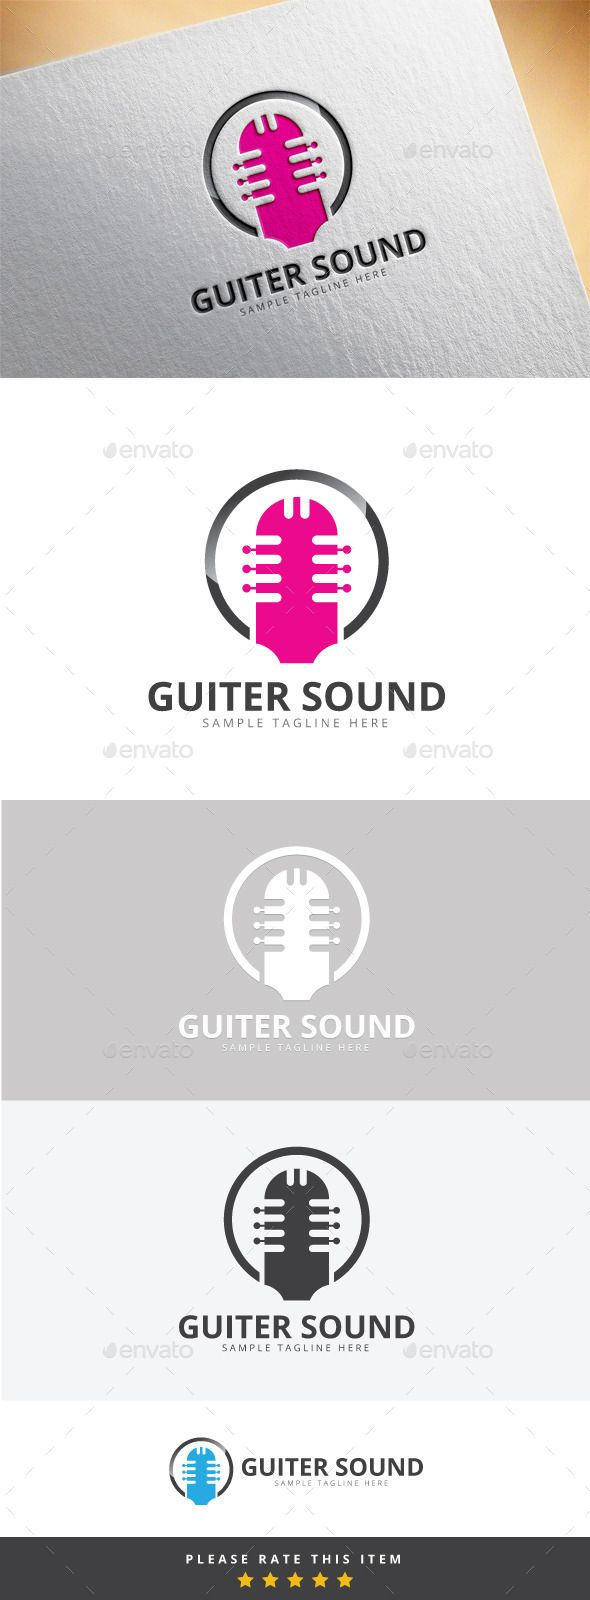 Guiter Sound Logo — Vector EPS #symbol #icon • Available here → https://graphicriver.net/item/guiter-sound-logo/10169814?ref=pxcr